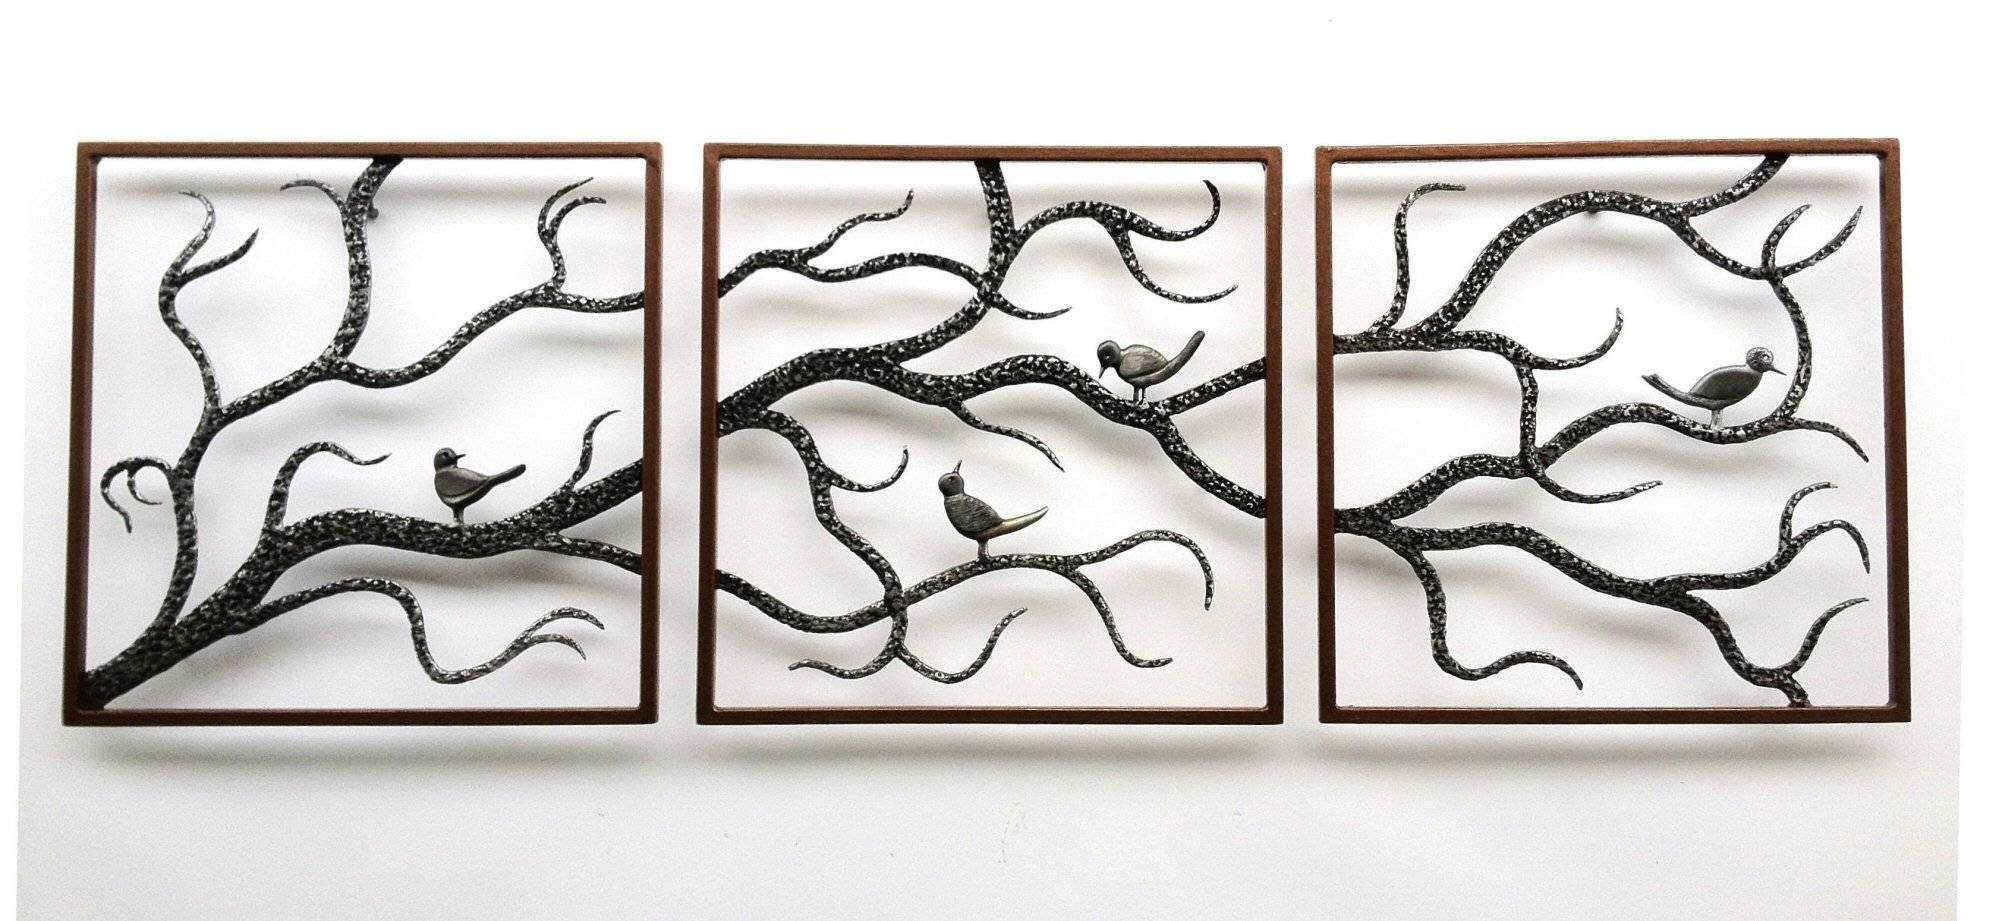 Wall Art Designs: Metal Wall Art Trees Birch Three Framed Cute With Best And Newest Large Metal Wall Art (View 7 of 20)